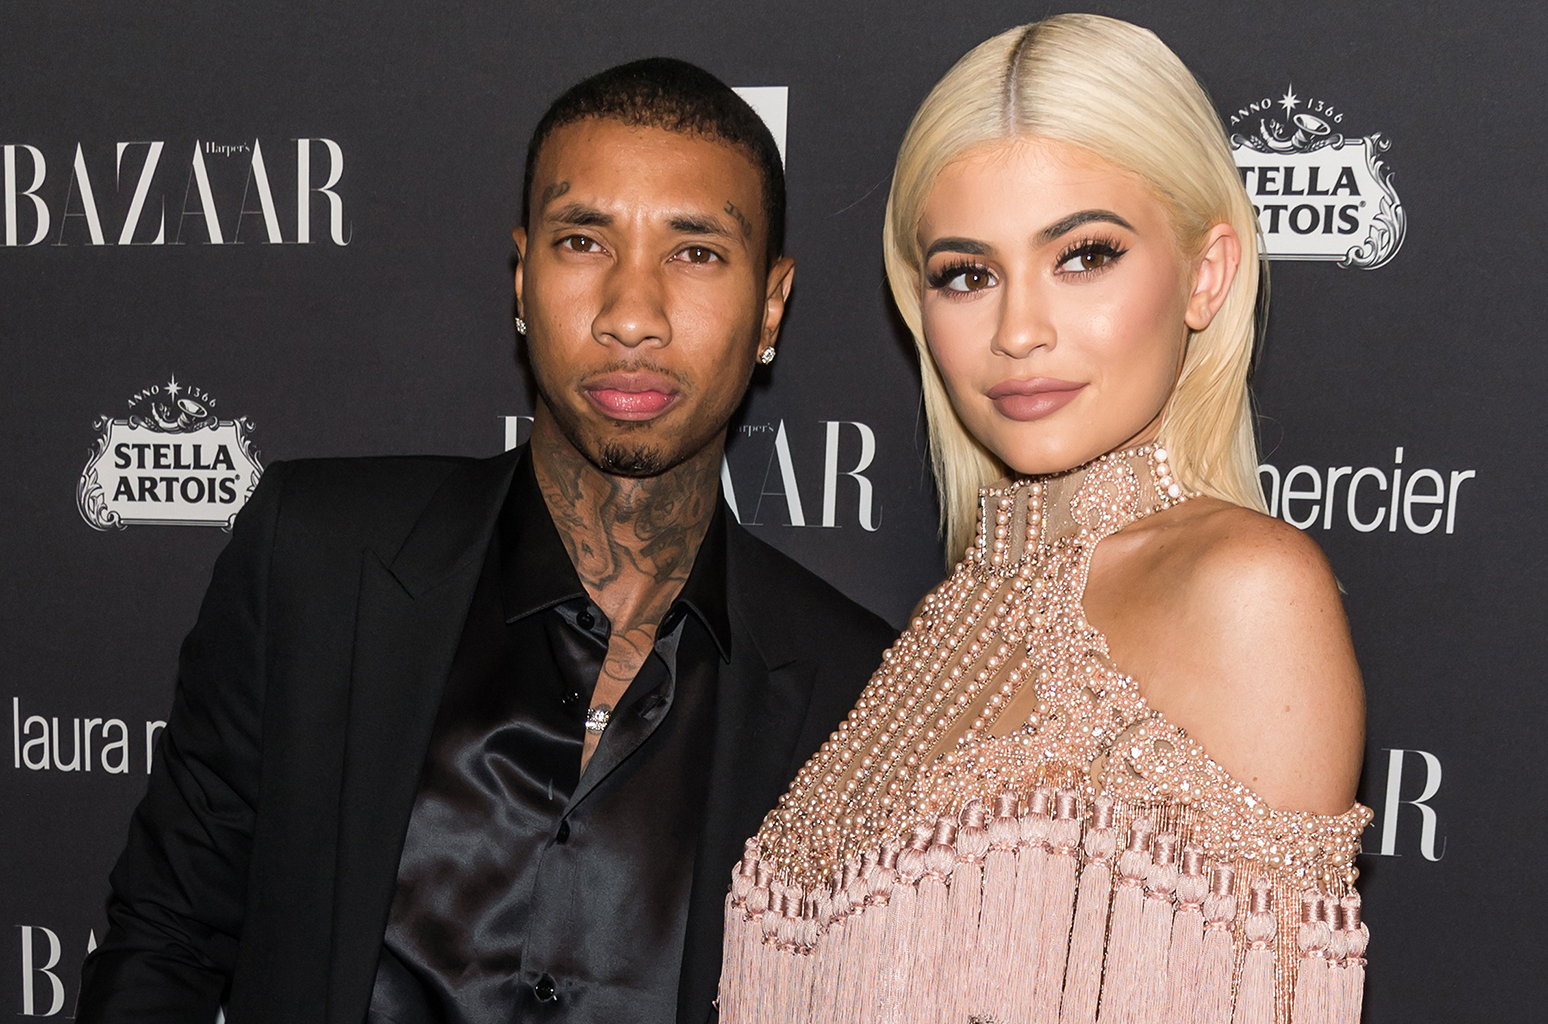 Image result for Kylie Jenner and Tyga